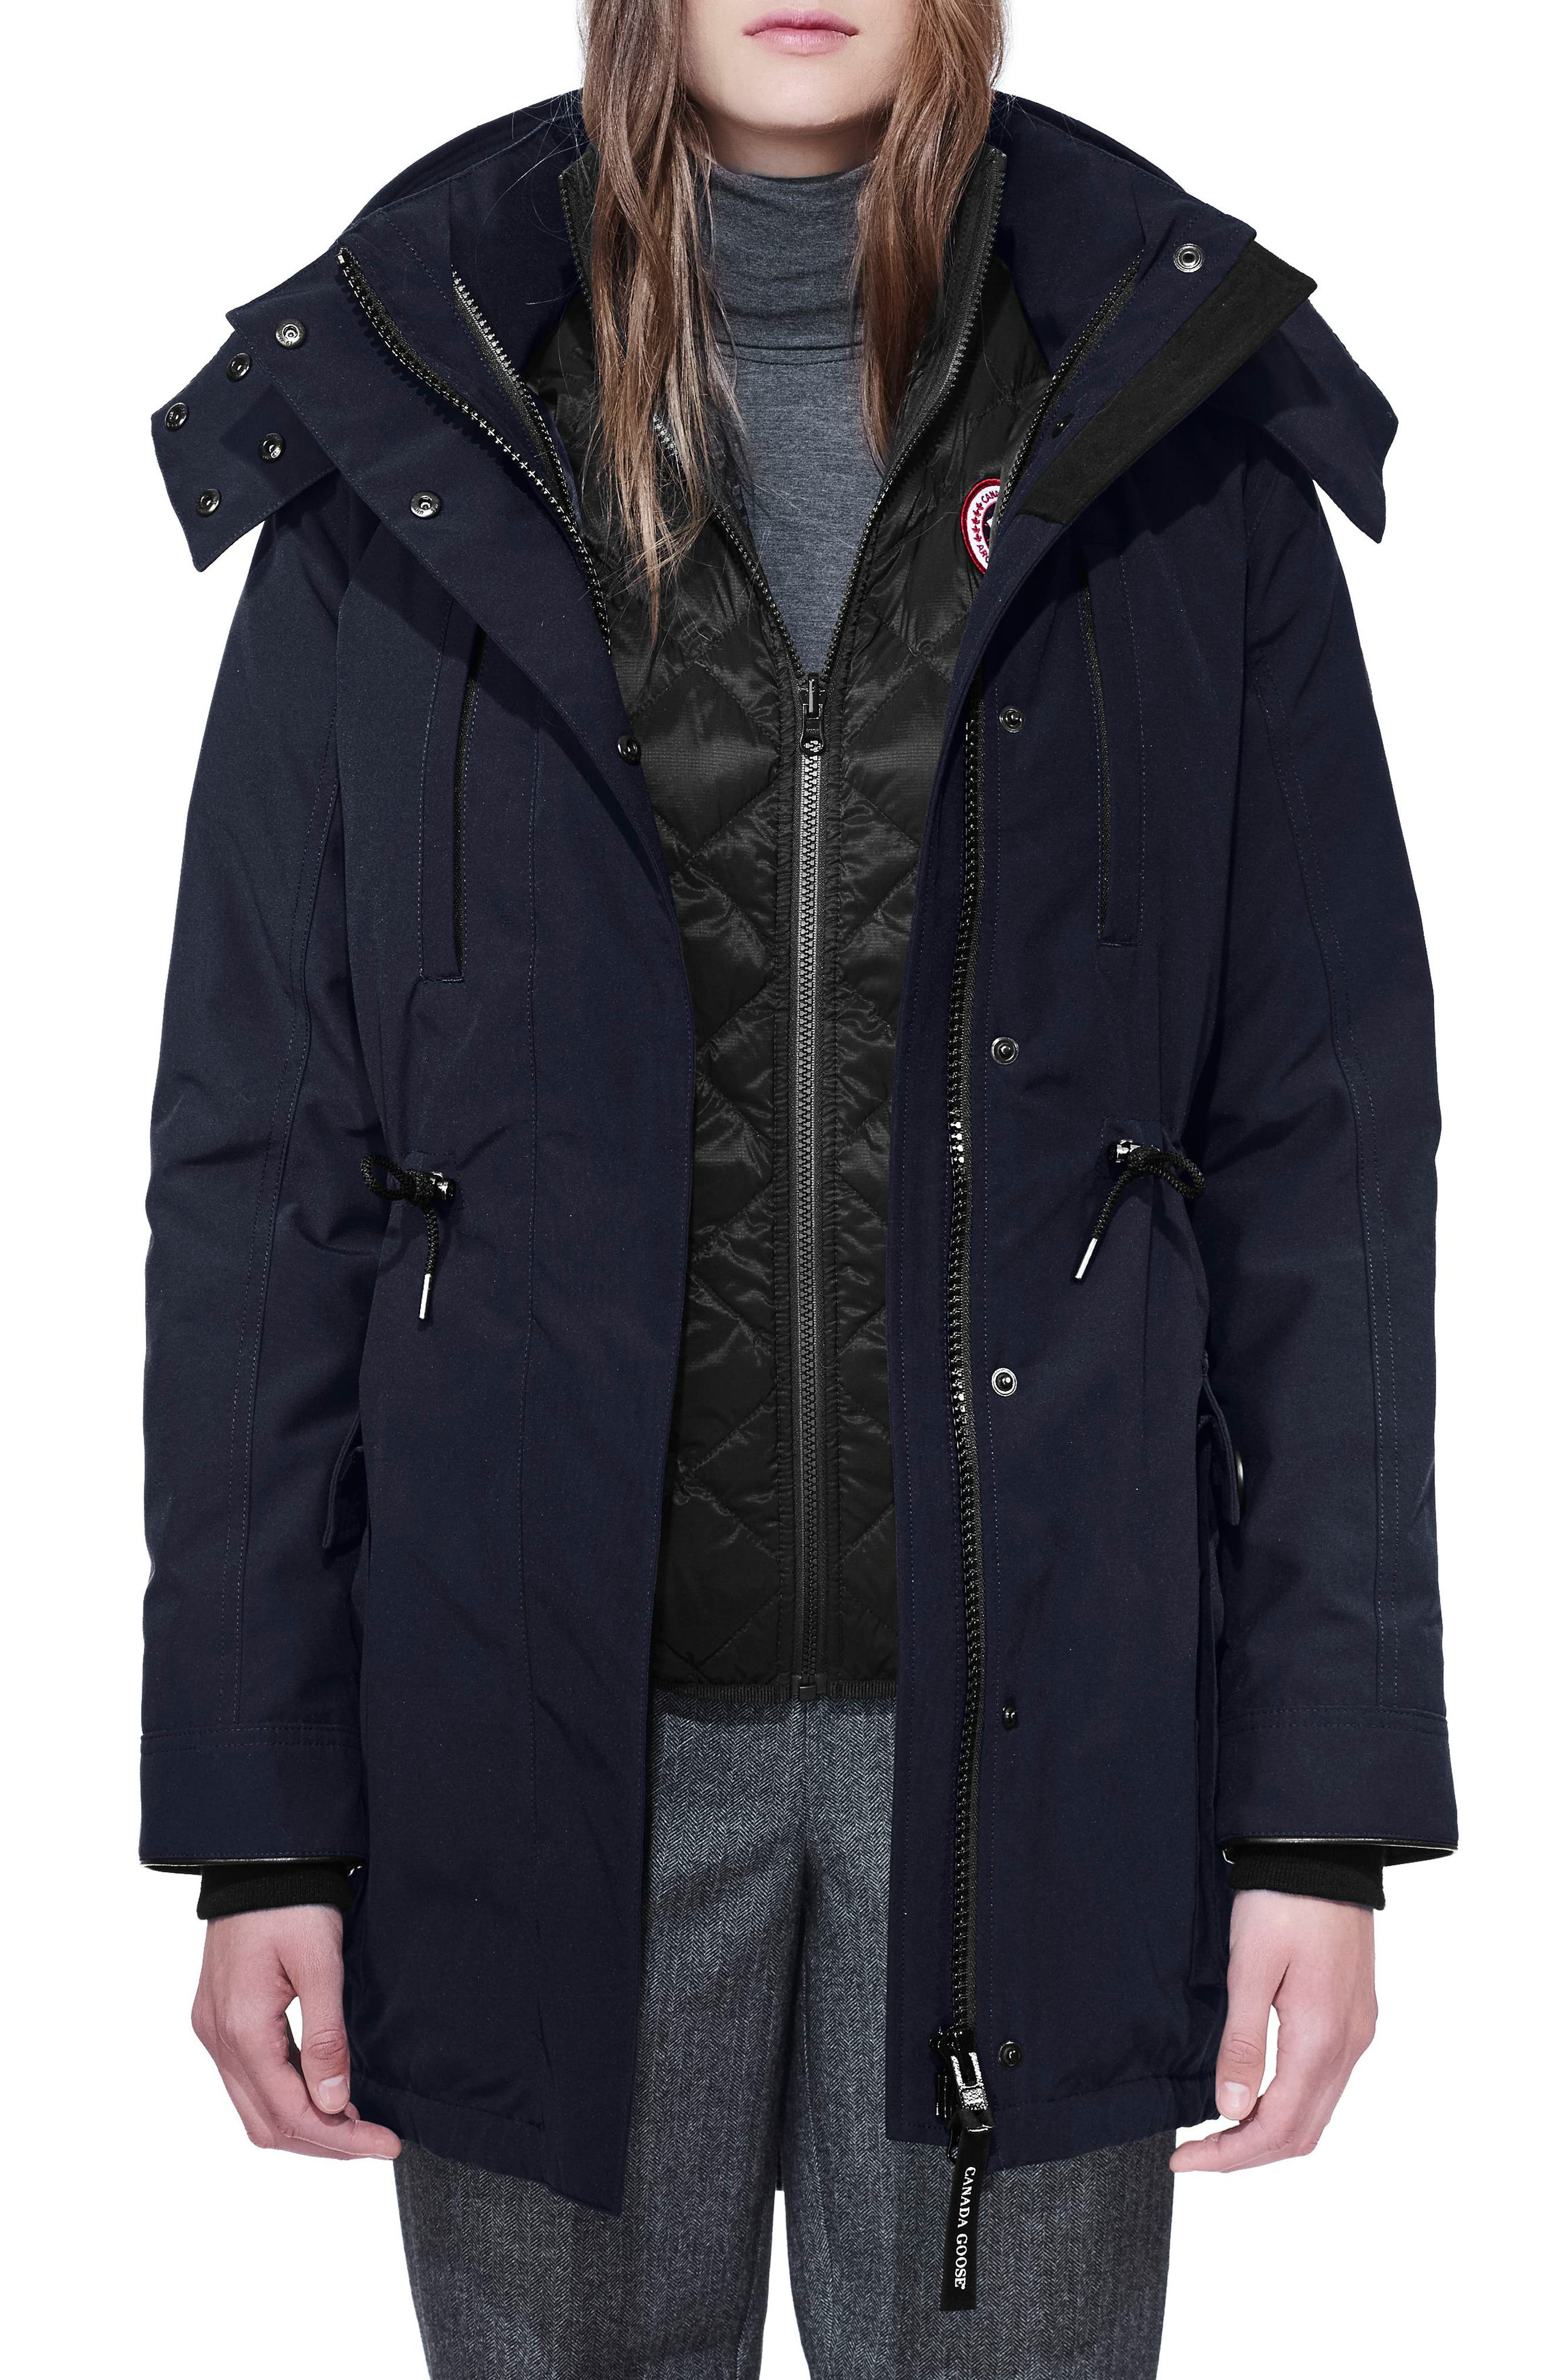 CANADA GOOSE, Perley Waterproof 675-Fill-Power Down 3-in-1 Parka, Main thumbnail 1, color, ADMIRAL BLUE